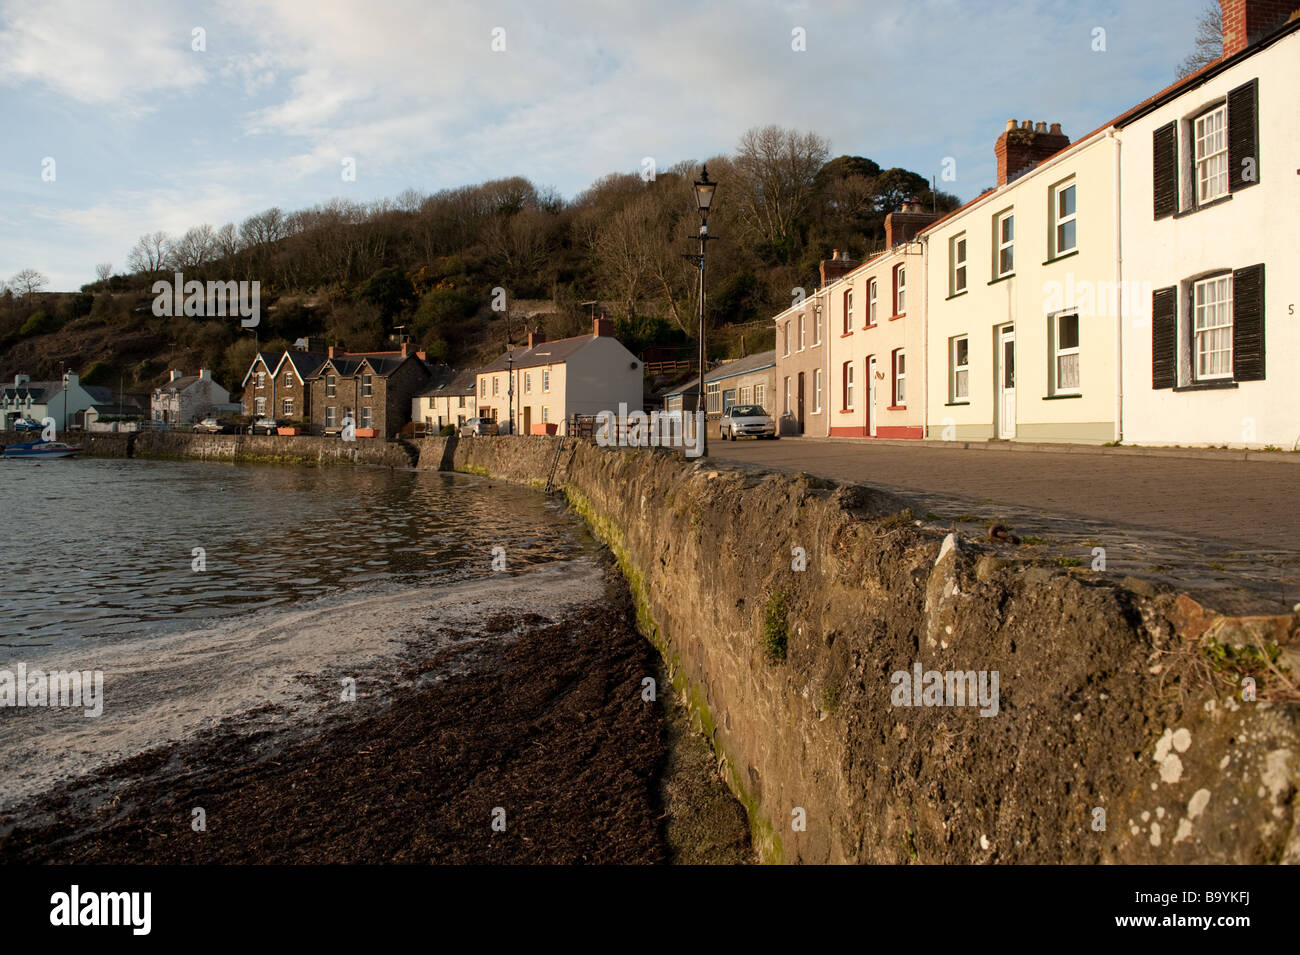 Quayside houses in Lower Fishguard Harbour, Pembrokeshire, wales, UK, GB, Great Britain, Europe - Stock Image